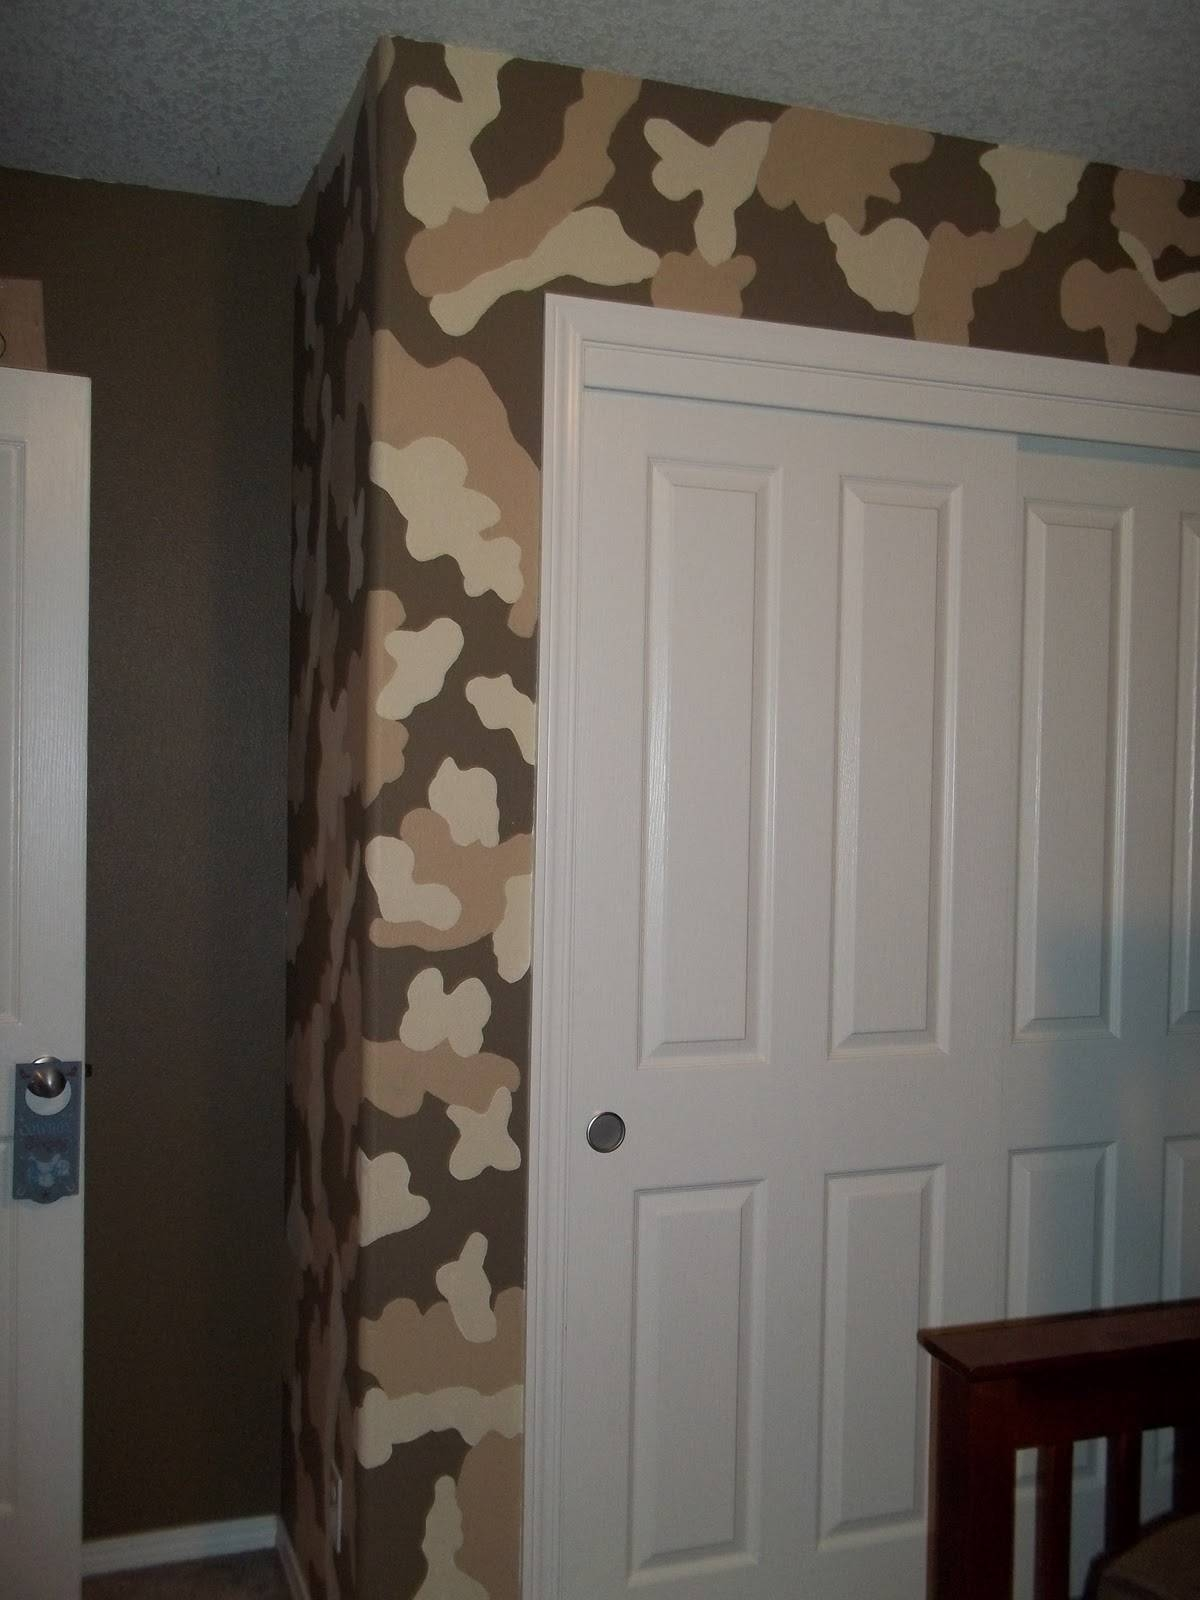 Camouflage Wall Decor – Todosobreelamor With Regard To Most Recently Released Camouflage Wall Art (View 16 of 20)